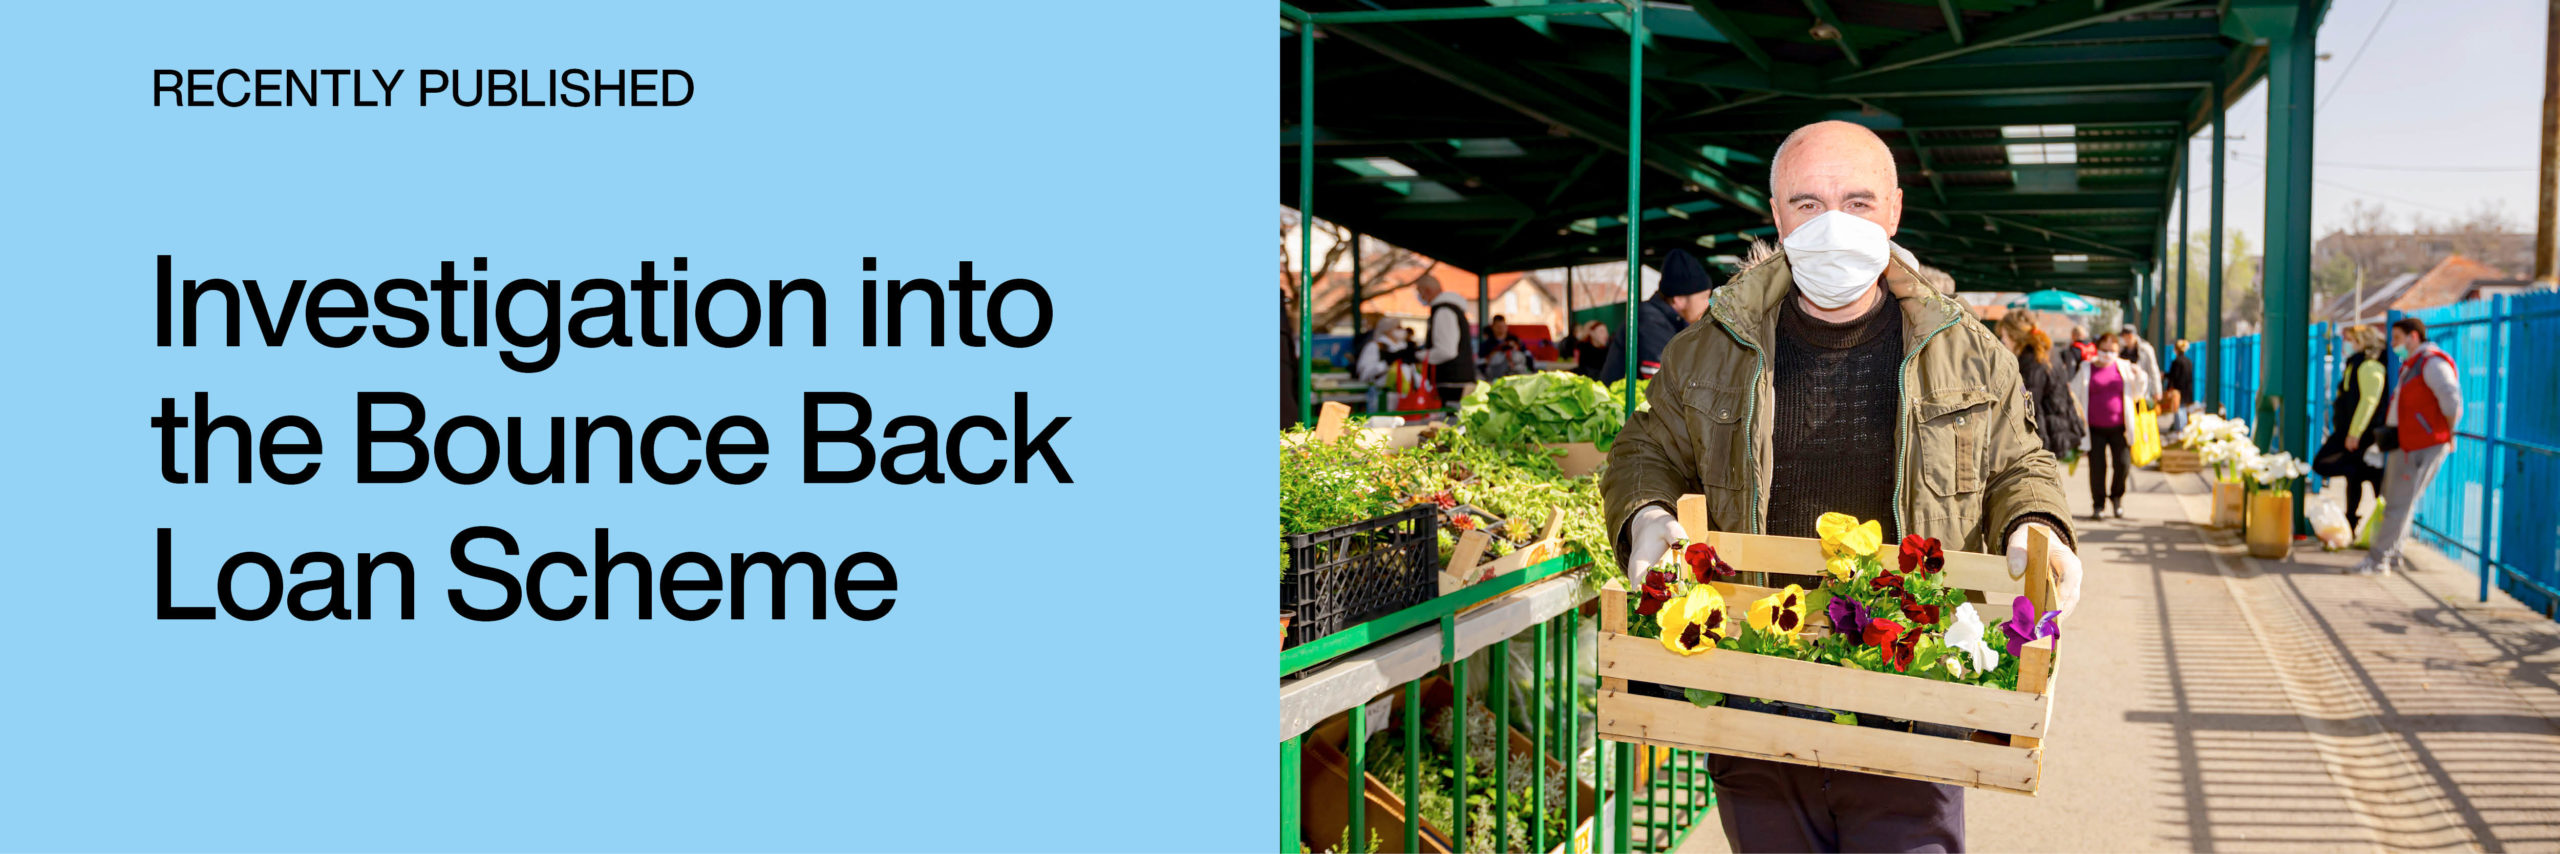 Recently published: Investigation into the Bounce Back Loan Scheme